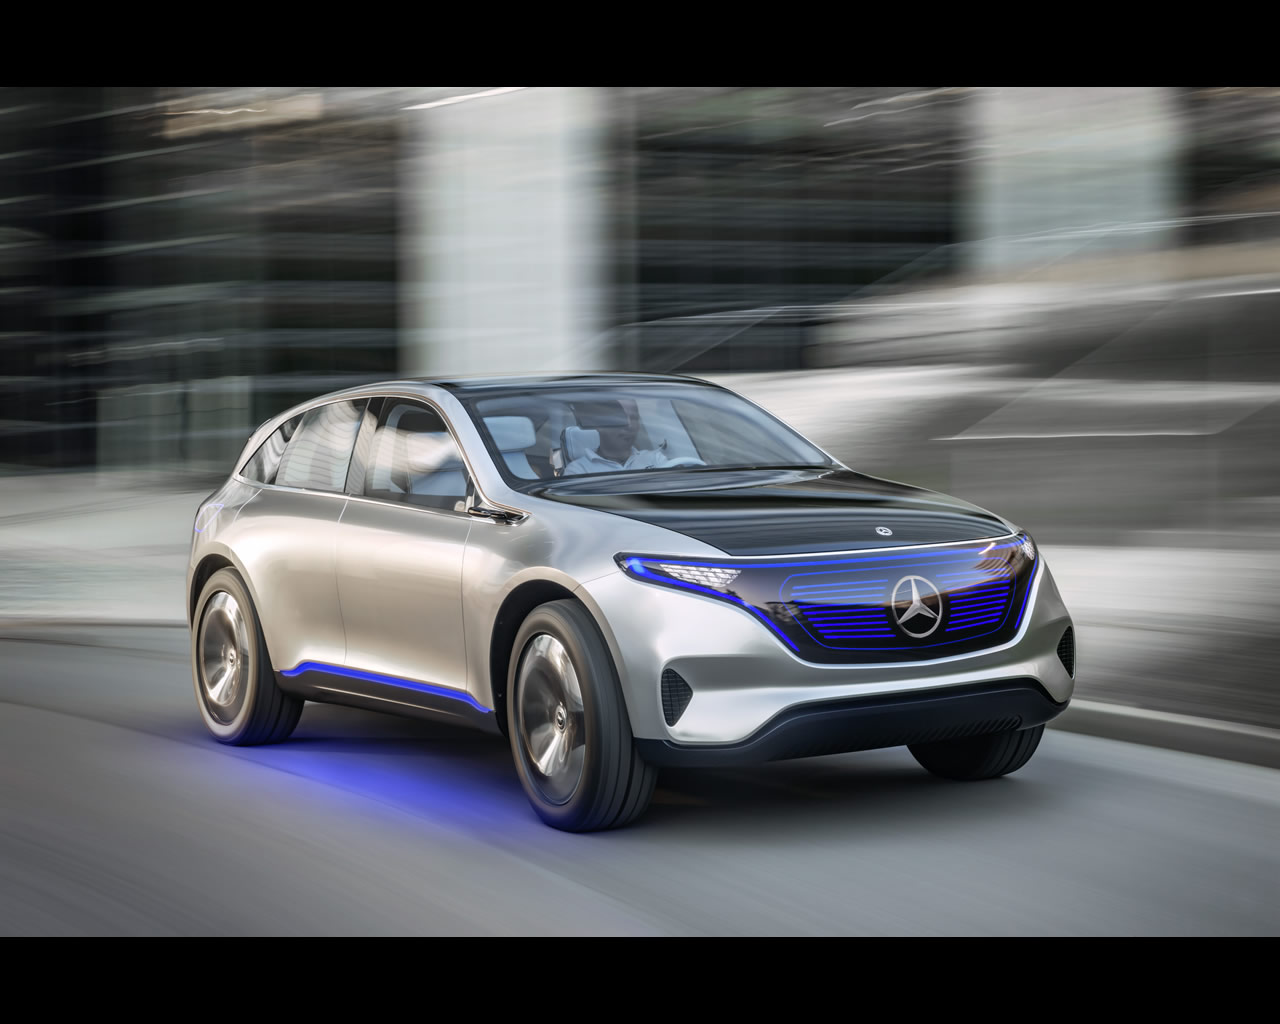 Mercedes benz eq pure electric suv coup concept 2016 for Mercedes benz suv coupe